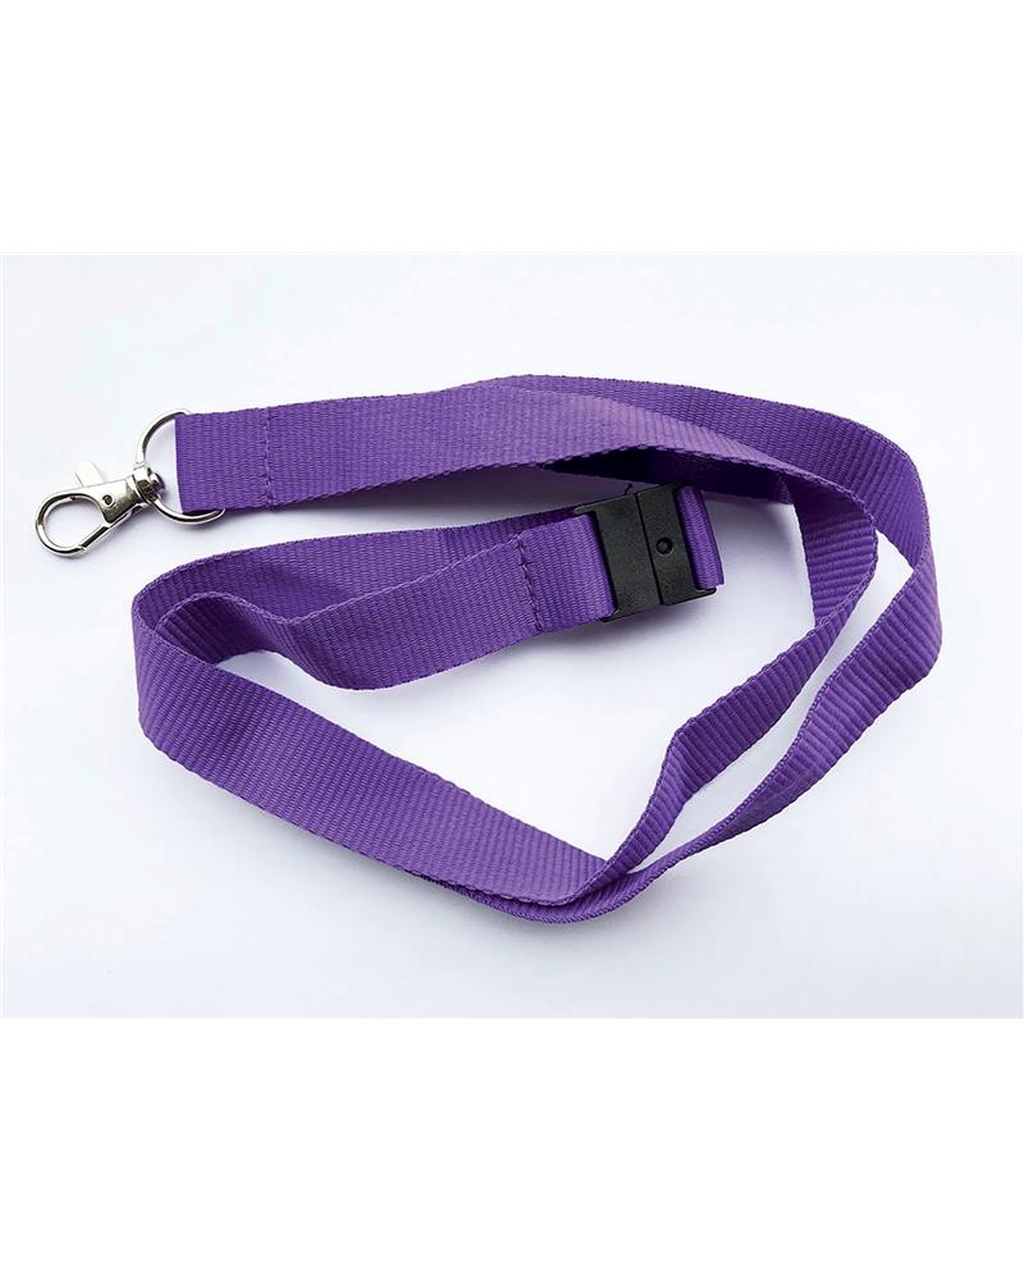 20Mm Lanyards Plain Purplepack Of 25